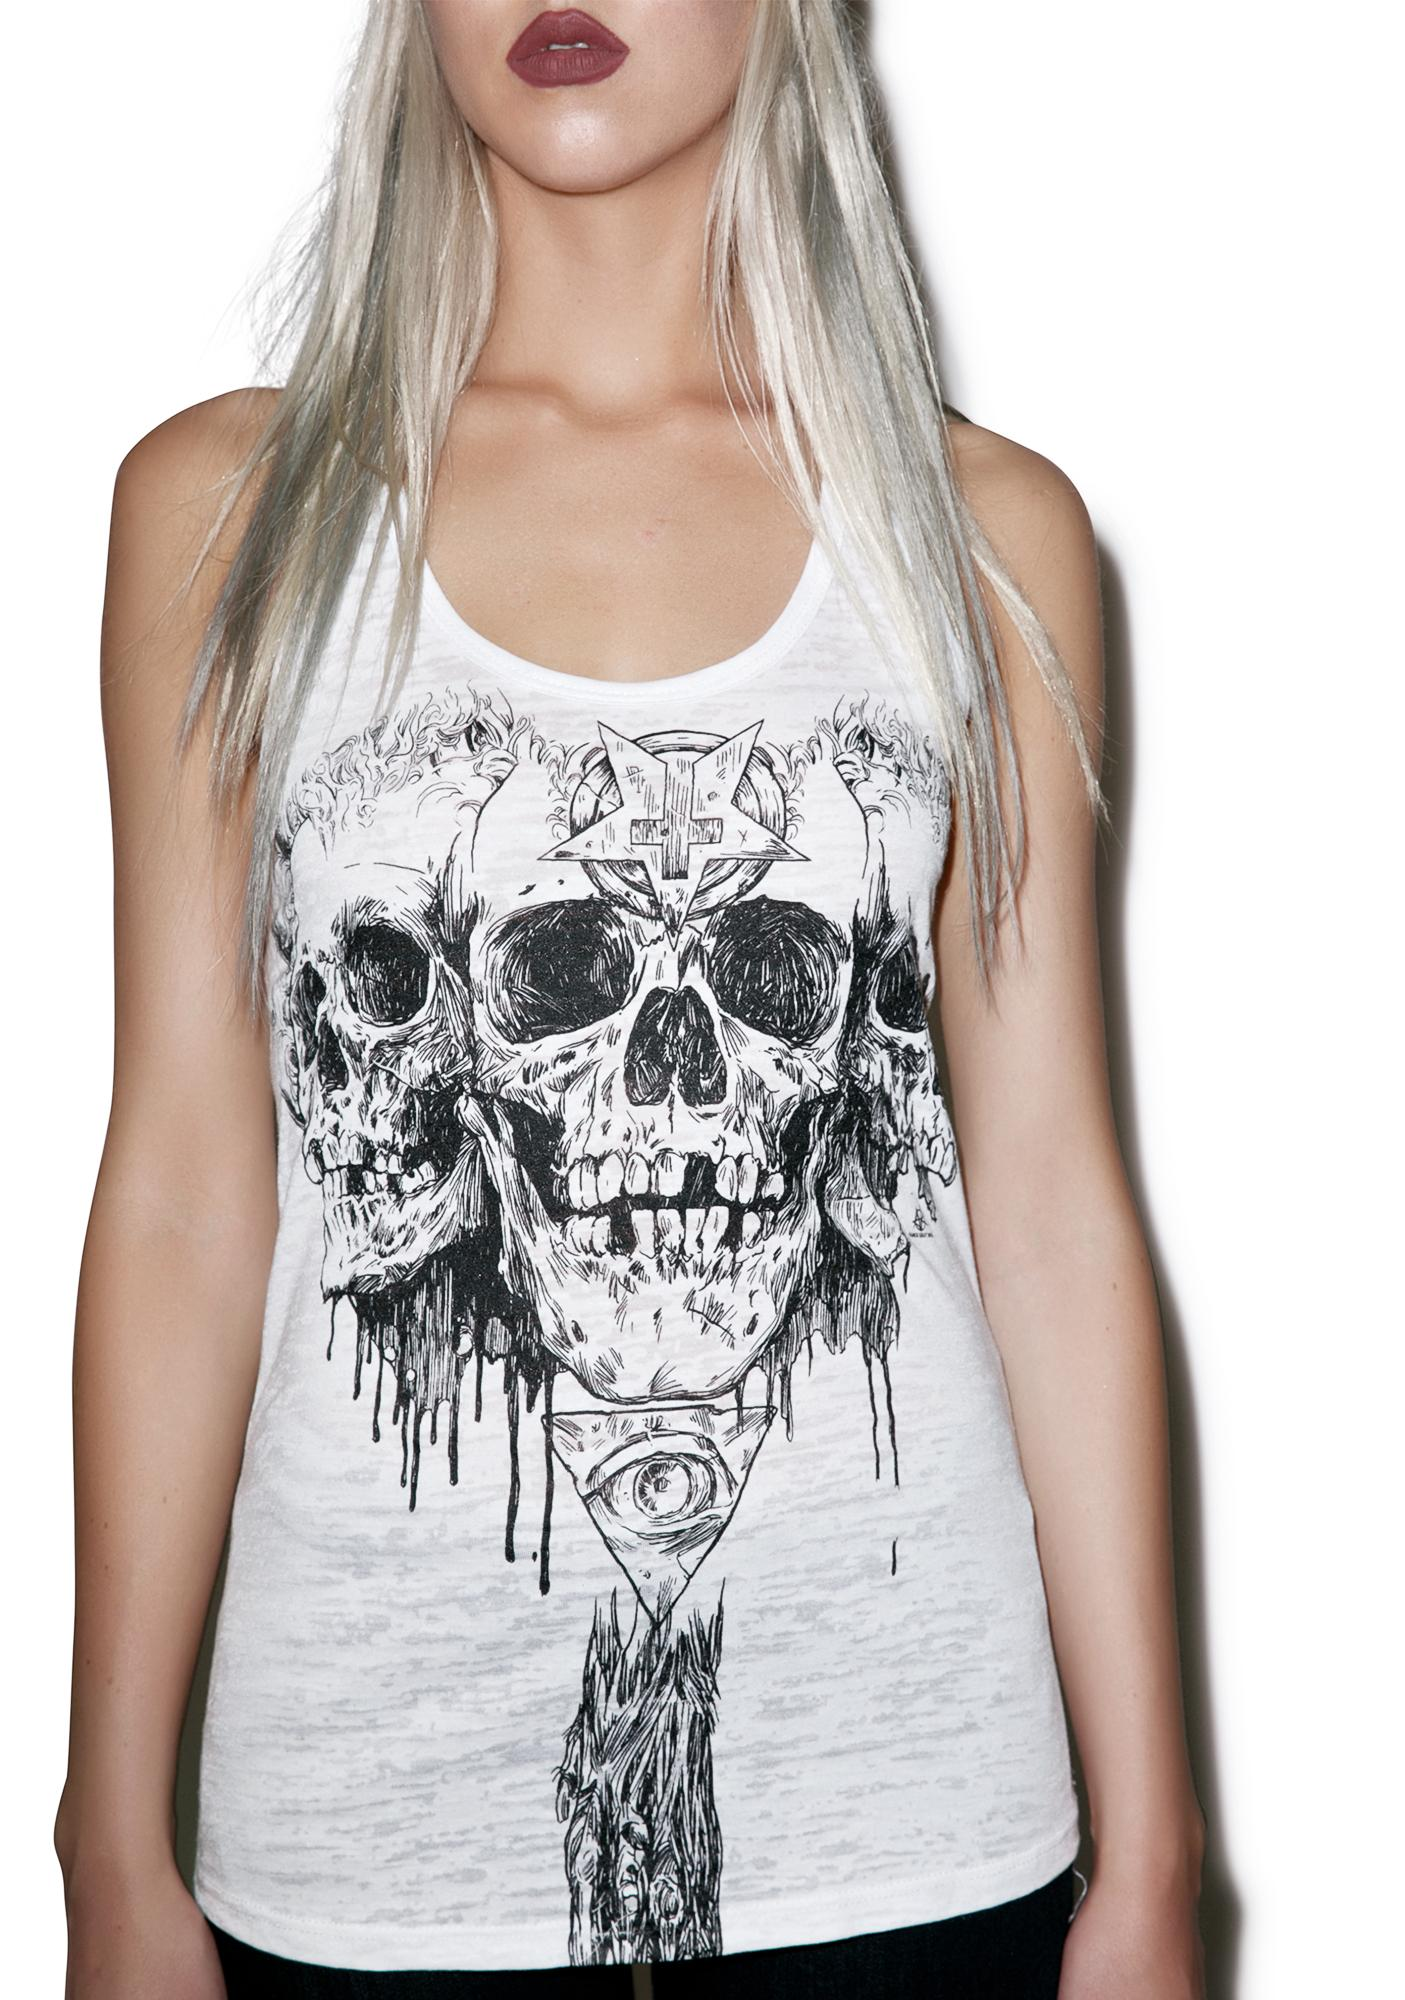 Junker Death Race Tank Top